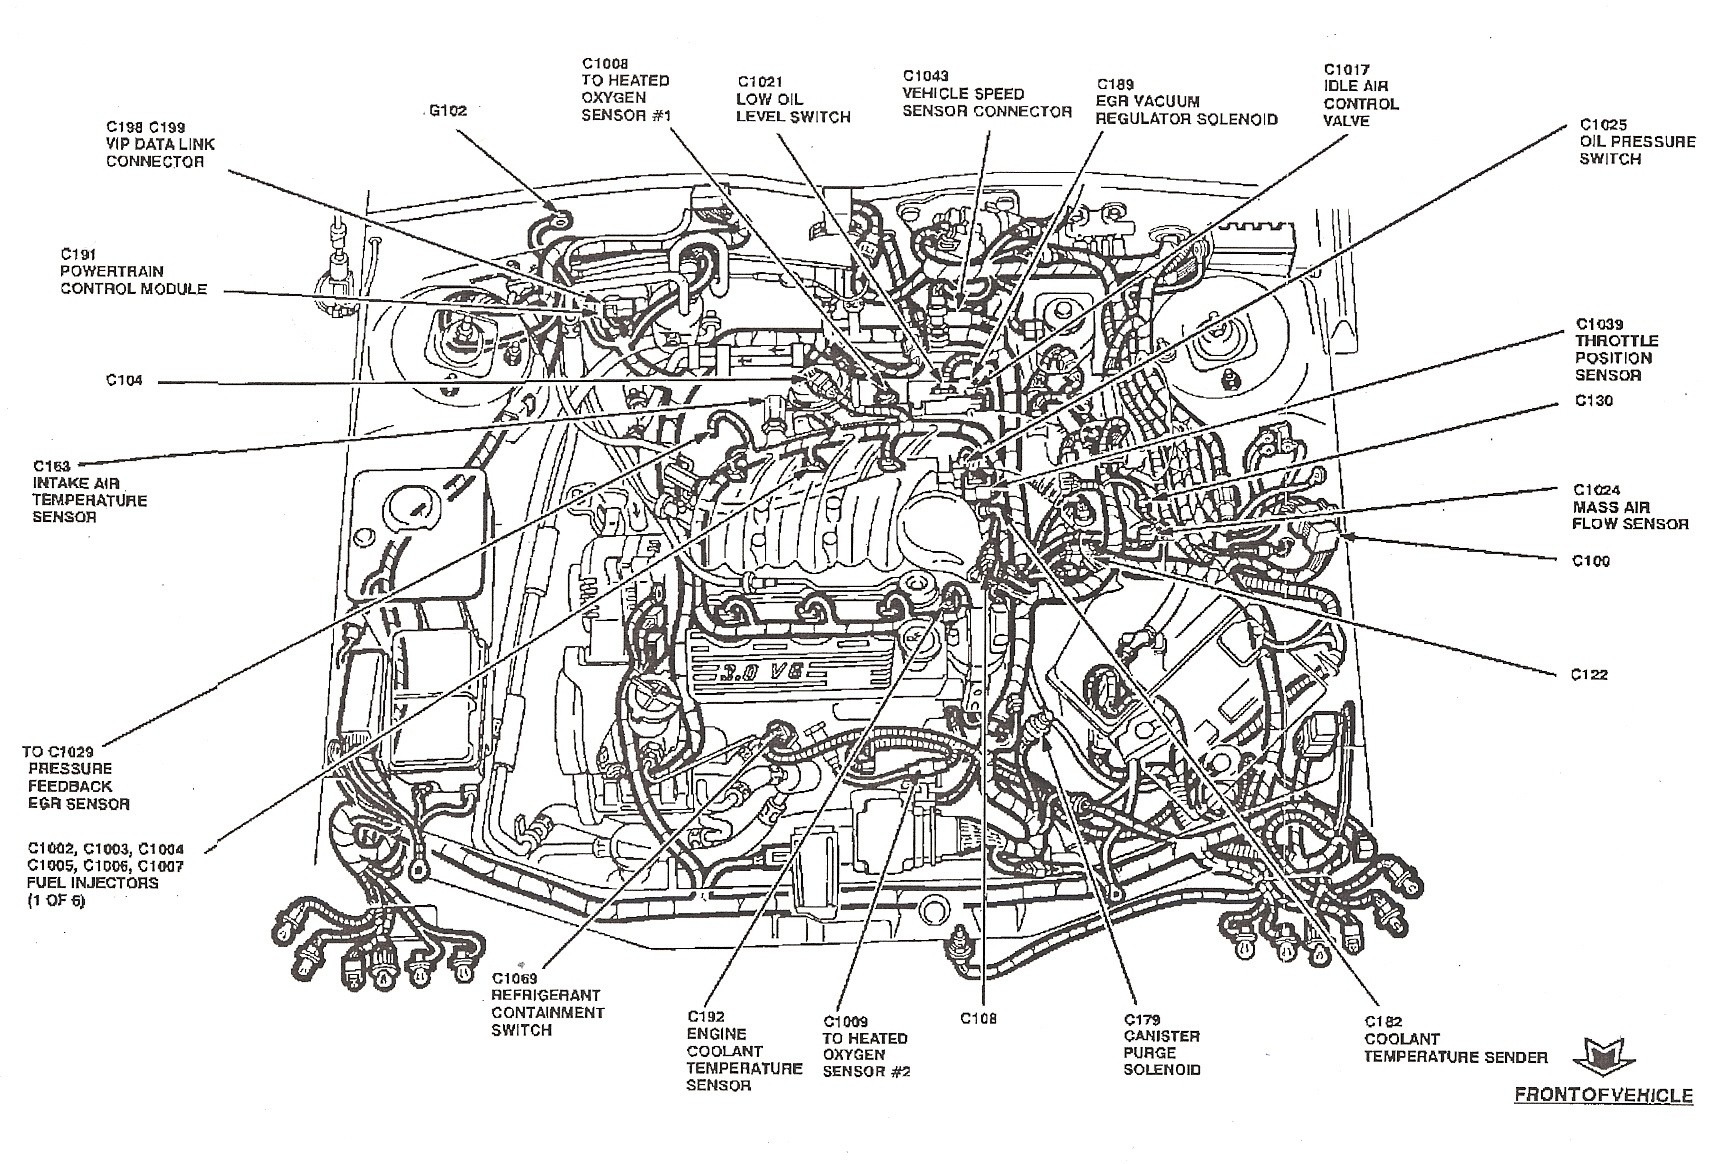 2000 ford Explorer Engine Diagram 2014 ford F250 Parts Diagram Wiring Diagram Database • Of 2000 ford Explorer Engine Diagram